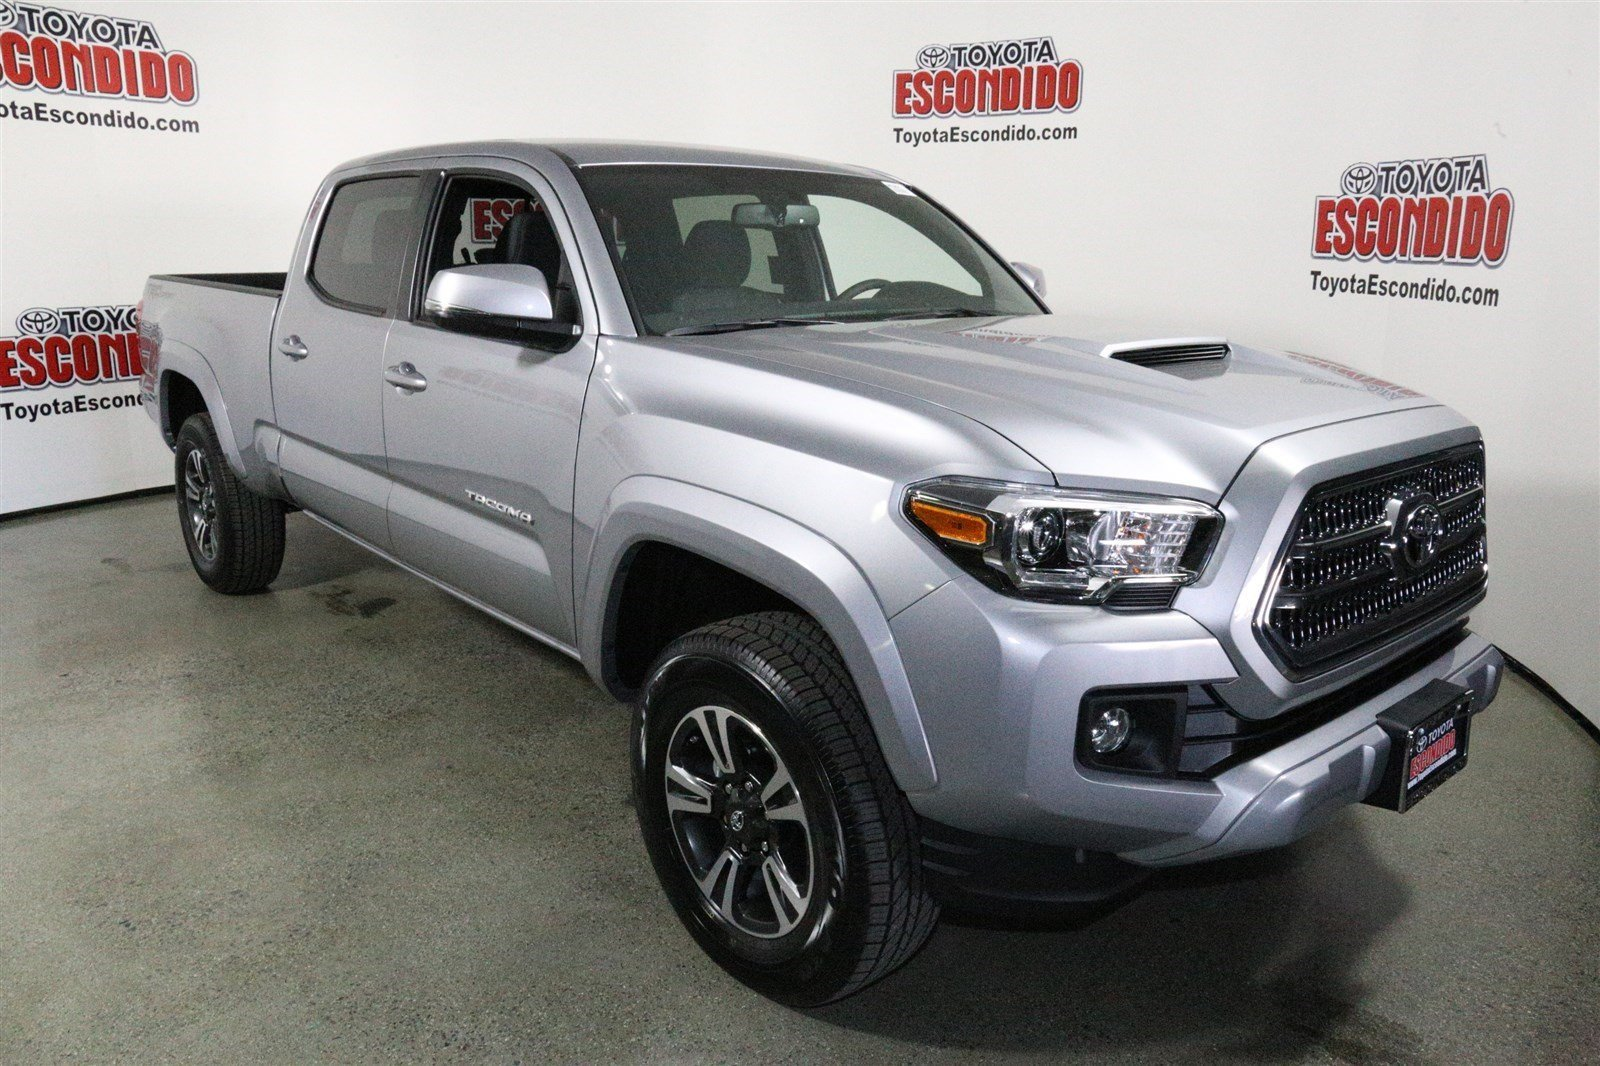 new 2017 toyota tacoma trd sport double cab pickup in escondido hm007883 toyota escondido. Black Bedroom Furniture Sets. Home Design Ideas